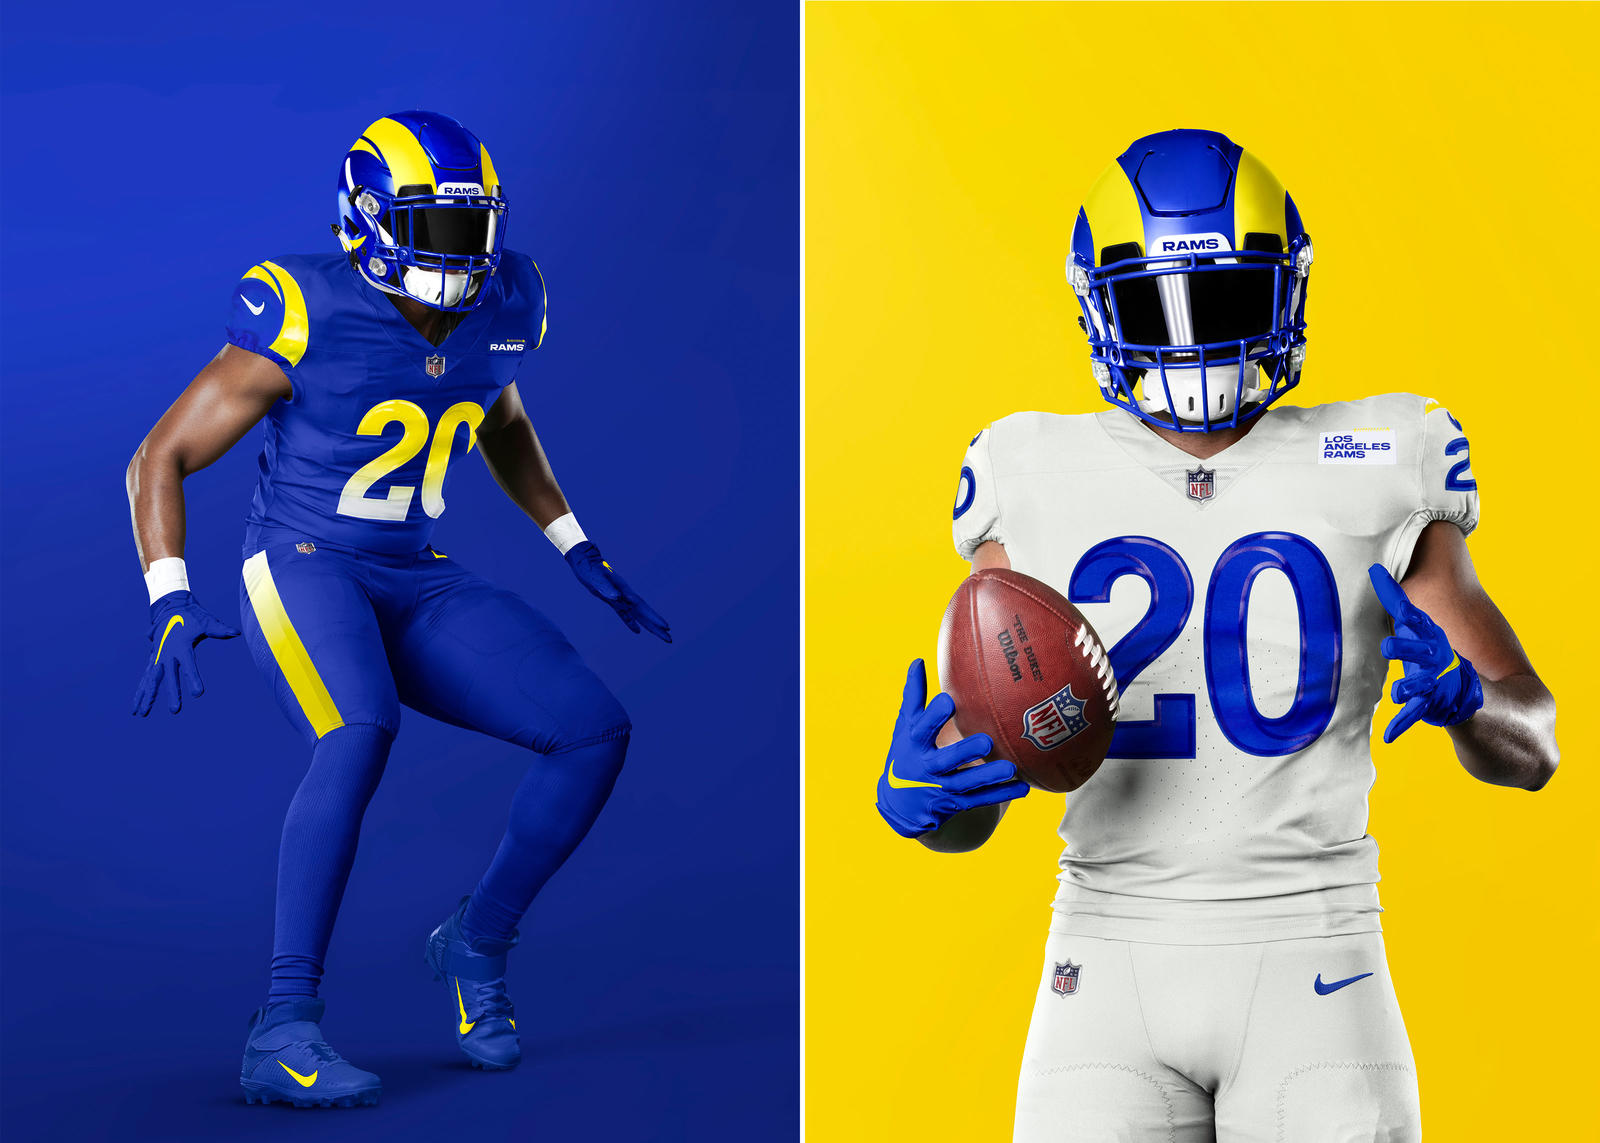 Los Angeles Rams Uniforms 2020 Official Images - Nike News